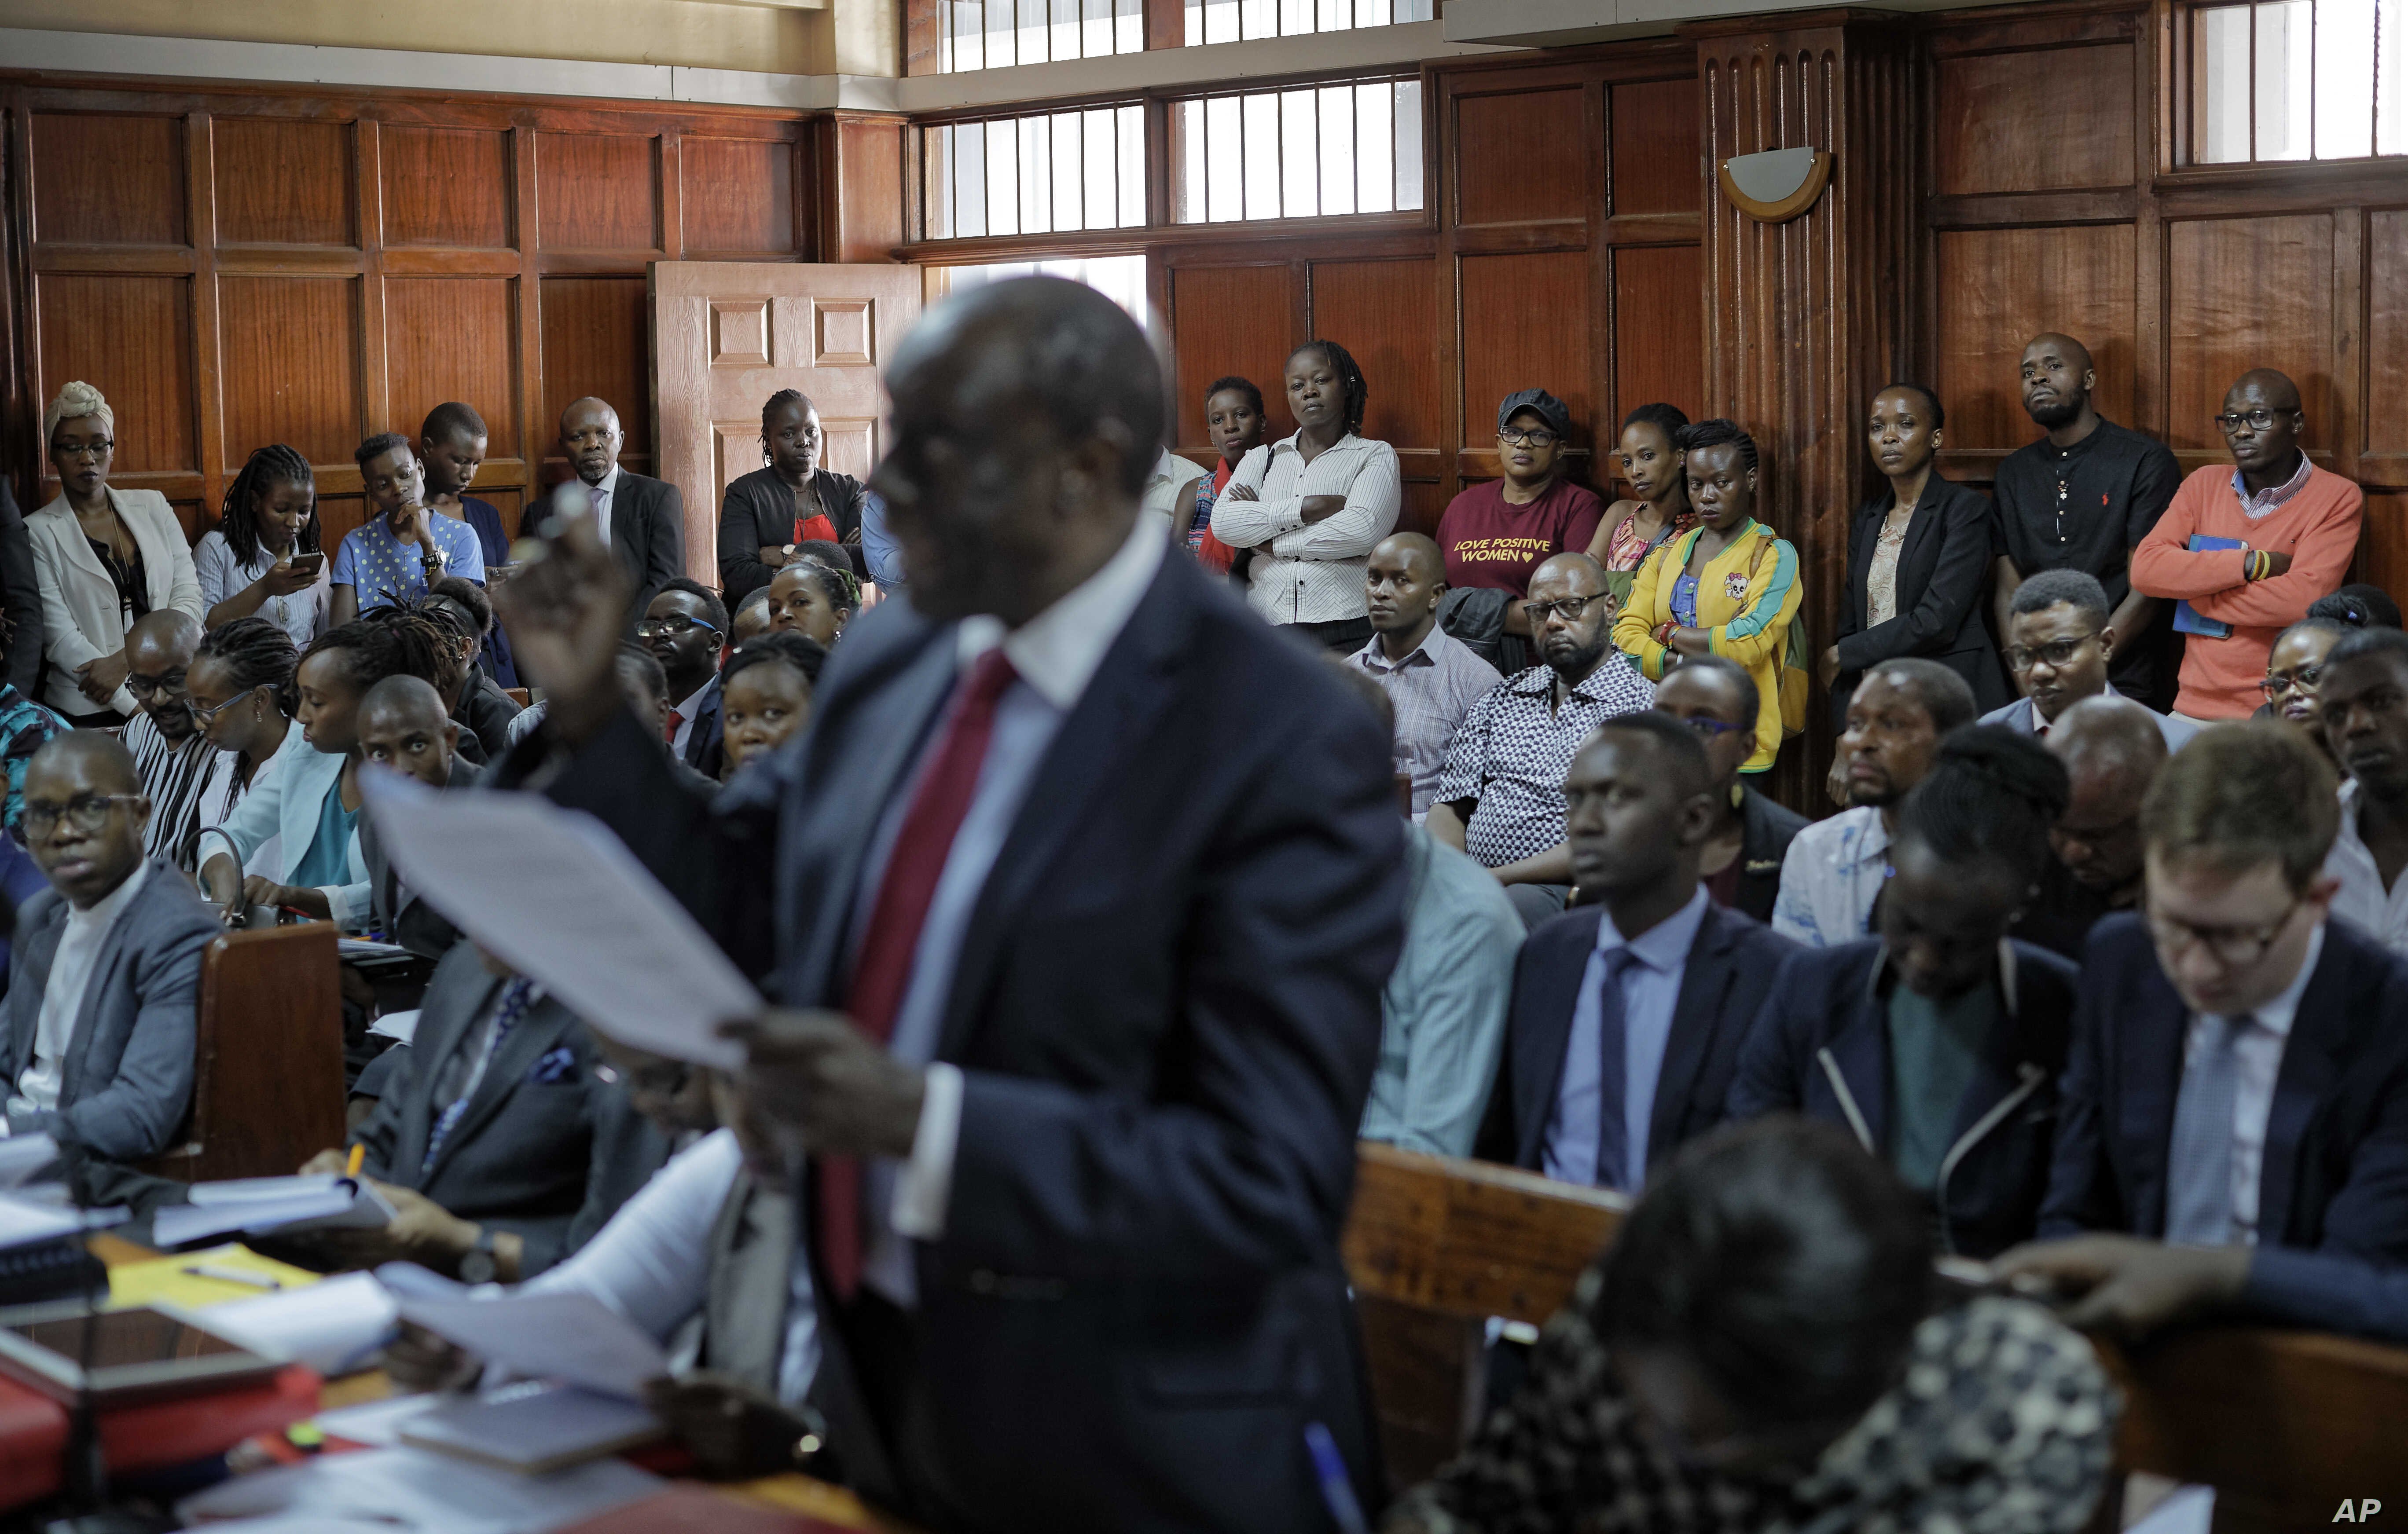 Members of the public listen as the High Court in Kenya begins hearing arguments in a case challenging parts of the penal code seen as targeting the lesbian, gay, bisexual and transgender communities, at the High Court in Nairobi, Kenya, Feb. 22, 201...